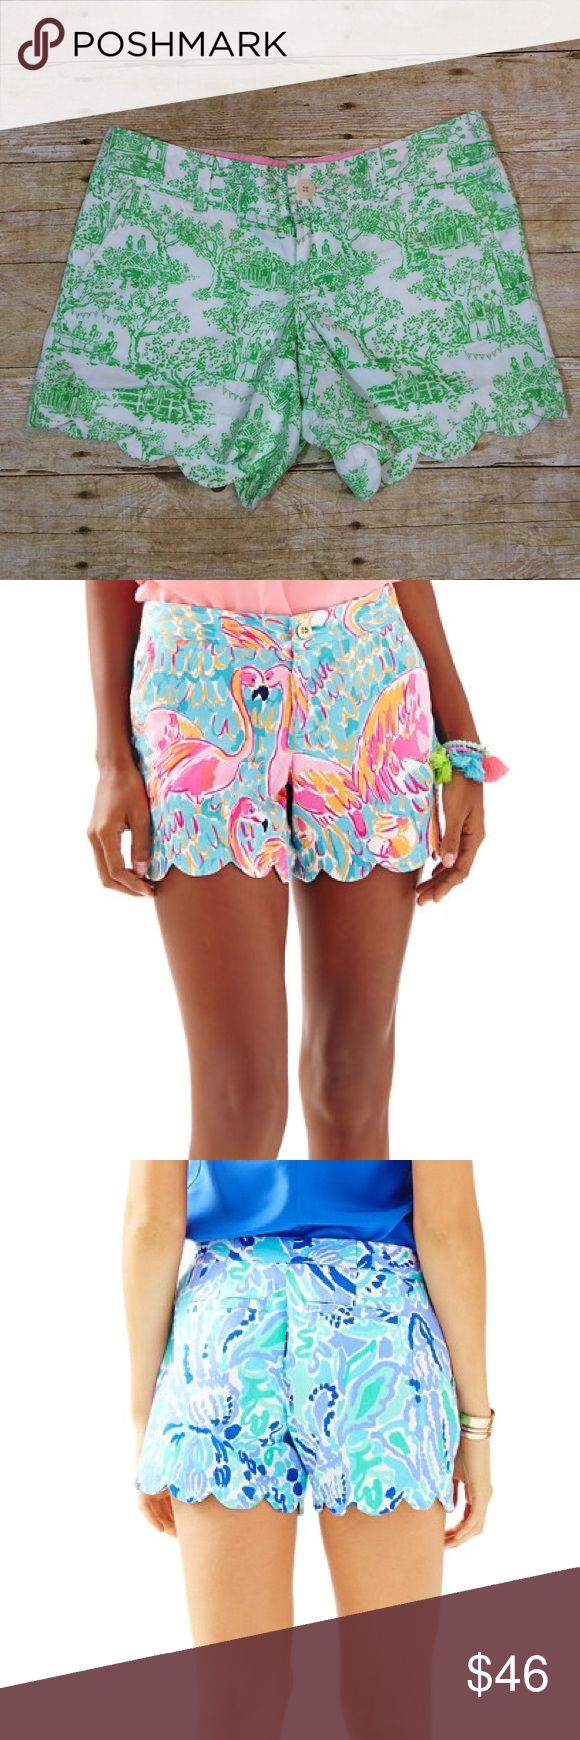 MUST GO❗️Lilly Pulitzer Buttercup Shorts Like new Lilly Pulitzer scallop buttercup shorts. Size 0. The print is called spring fever toile. These are so cute but too small for me now. The 2 stock photos are just to show how these fit. Waist laying flat is 16 in., inseam is 5 in. Open to offers and I have a 30% bundle discount! I LOVE OFFERS ❤️❤️ Lilly Pulitzer Shorts